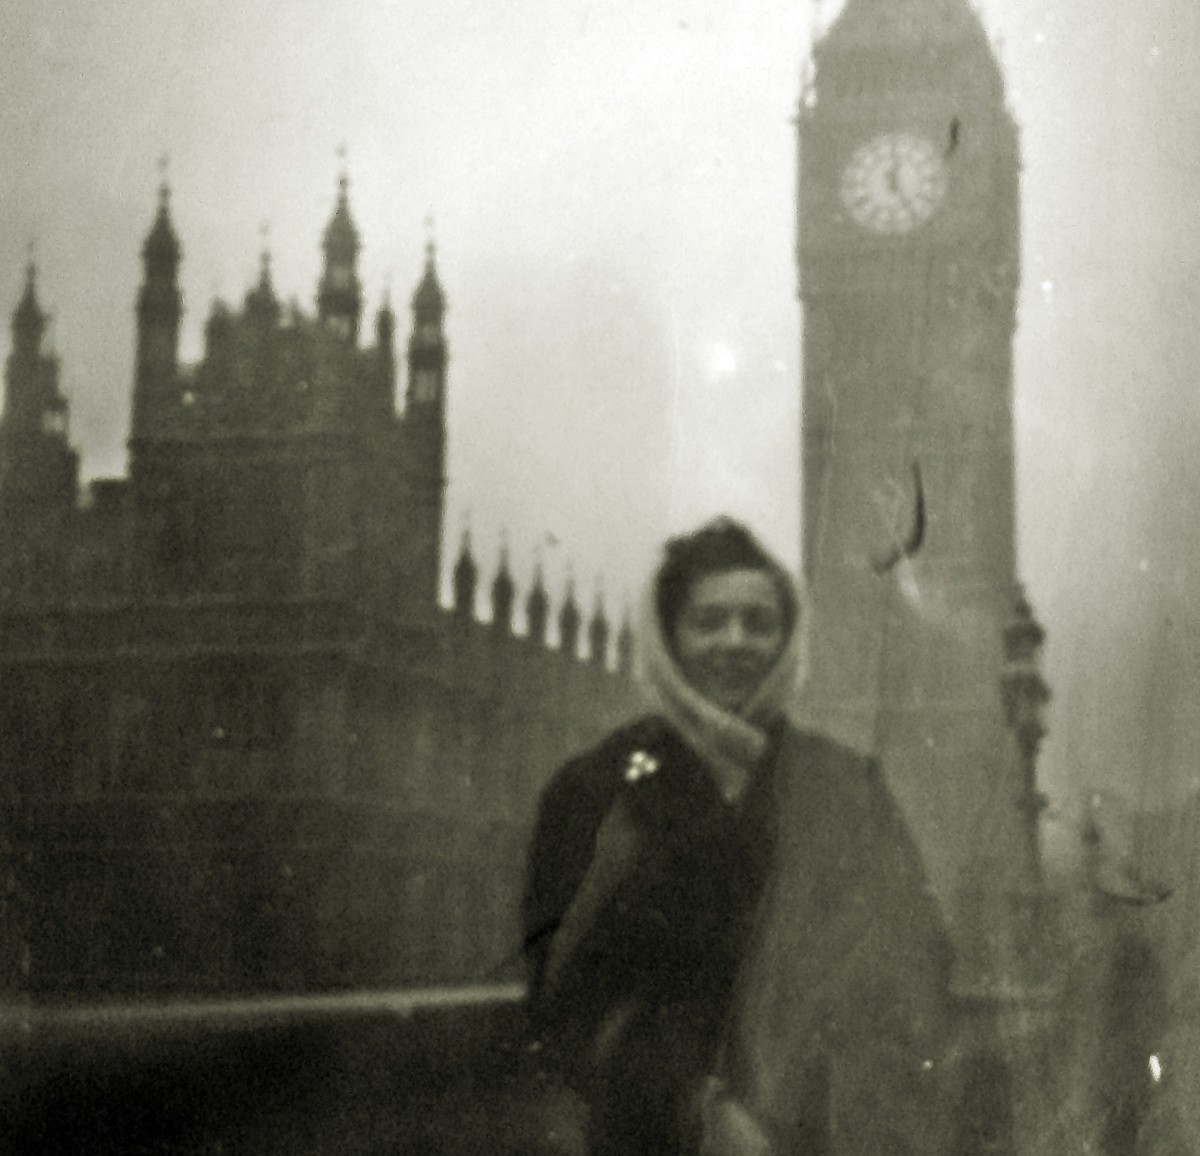 Mum on honeymoon standing in front of Big Ben - London, November 1957